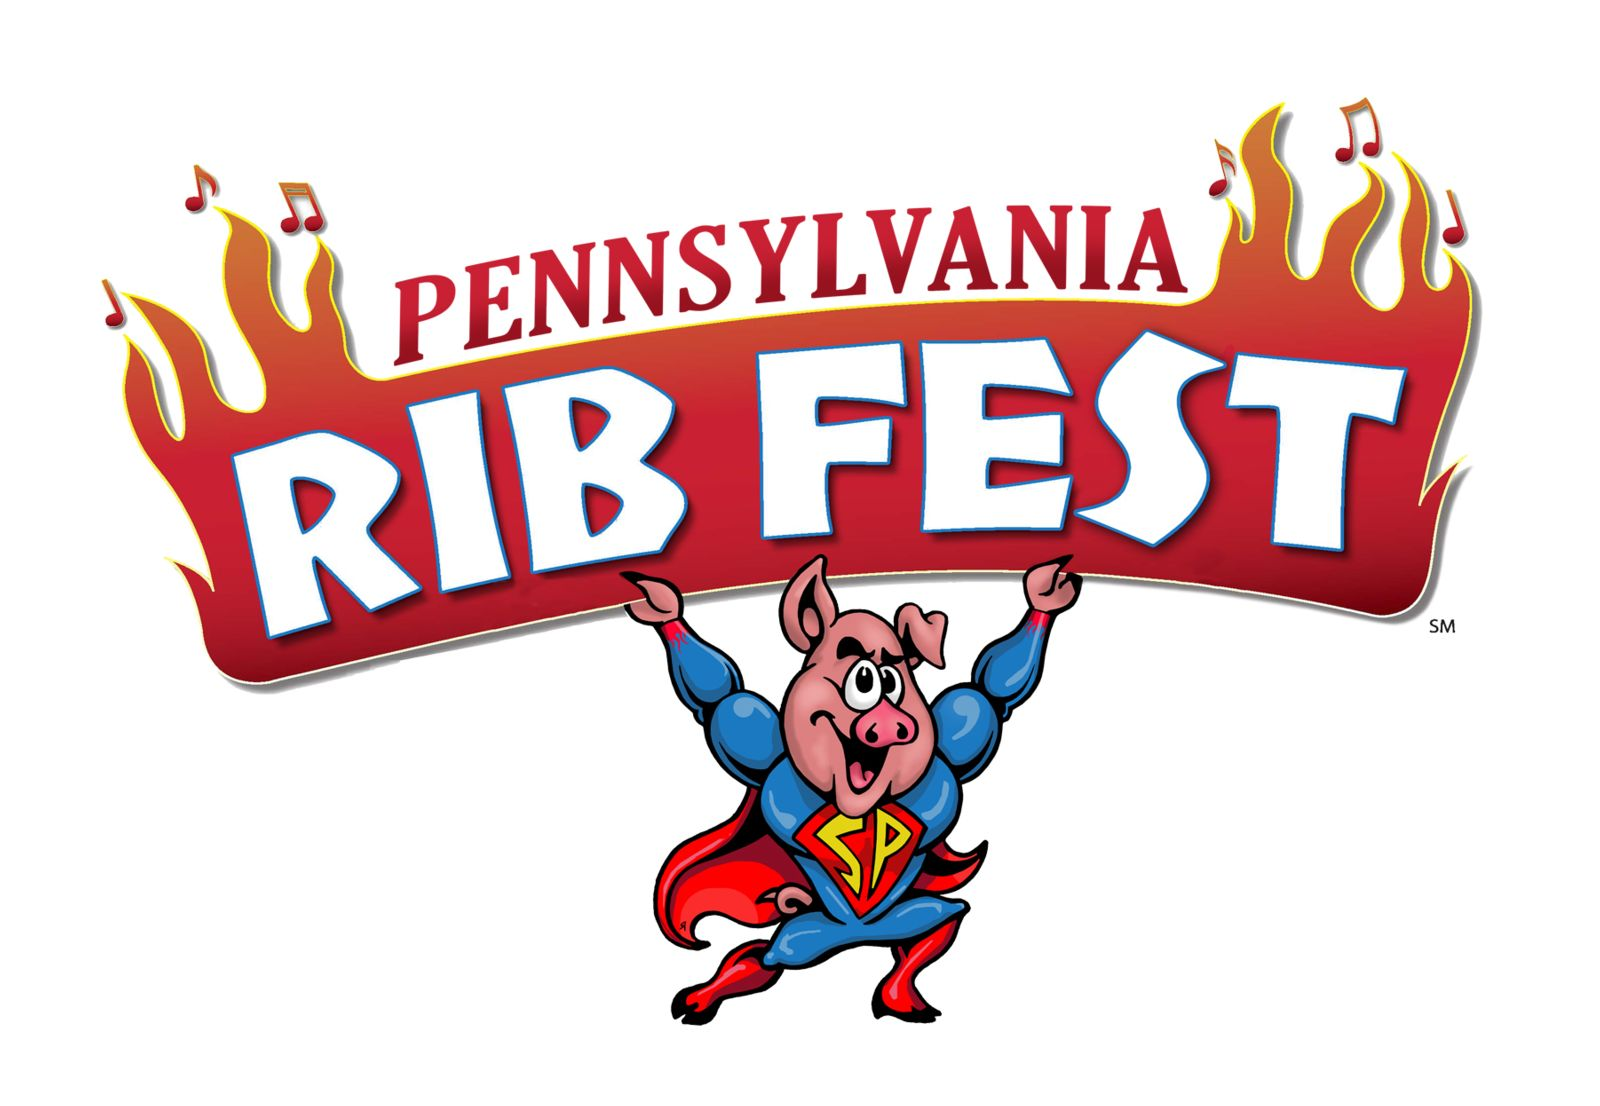 Event: Pennsylvania RibFest - June 24-26, 2016